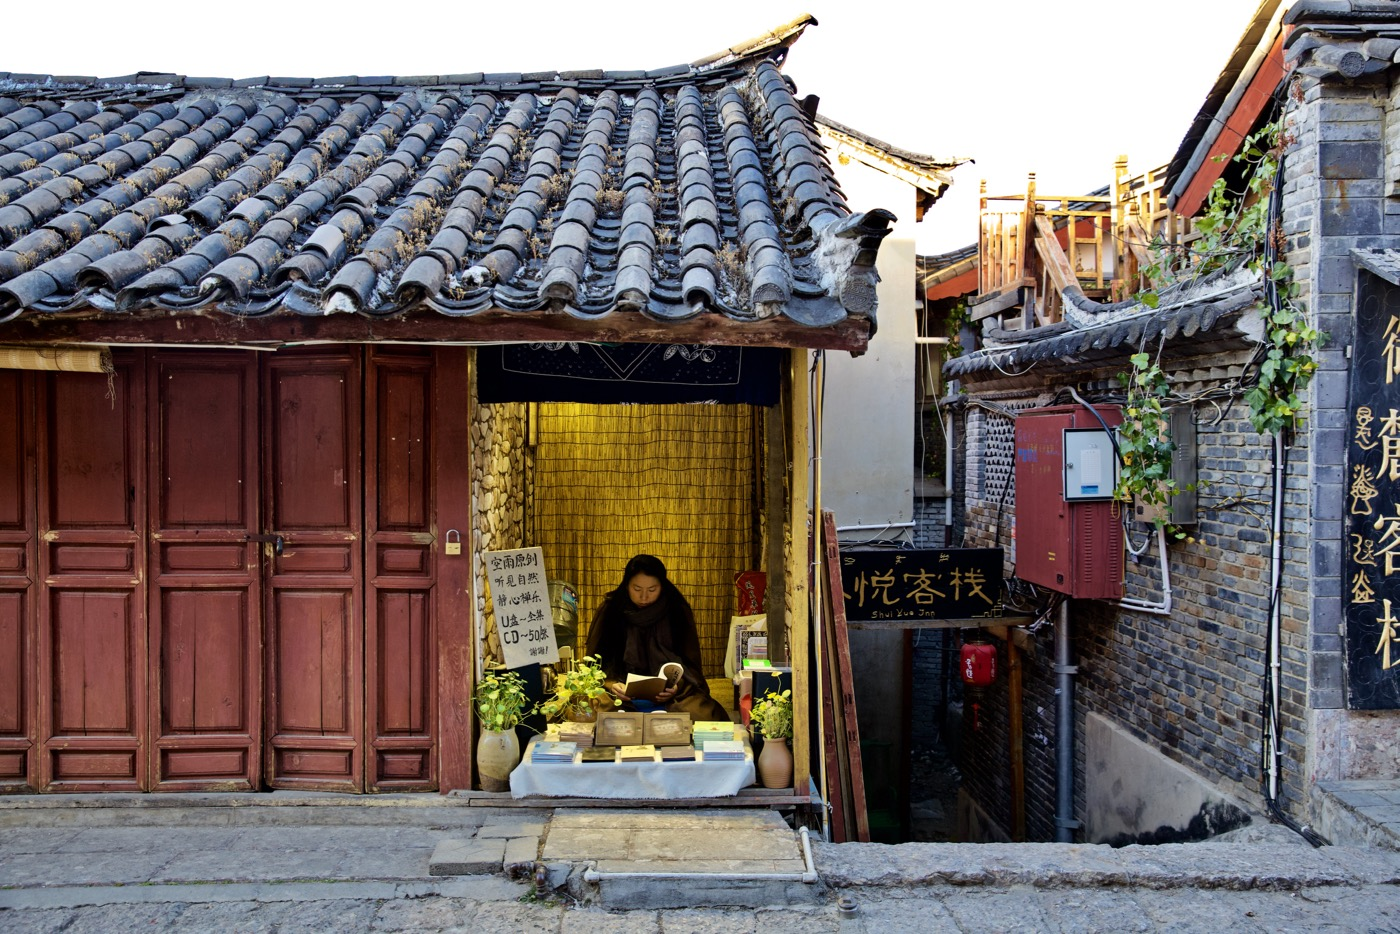 Selling inner peace.  Lijiang, China